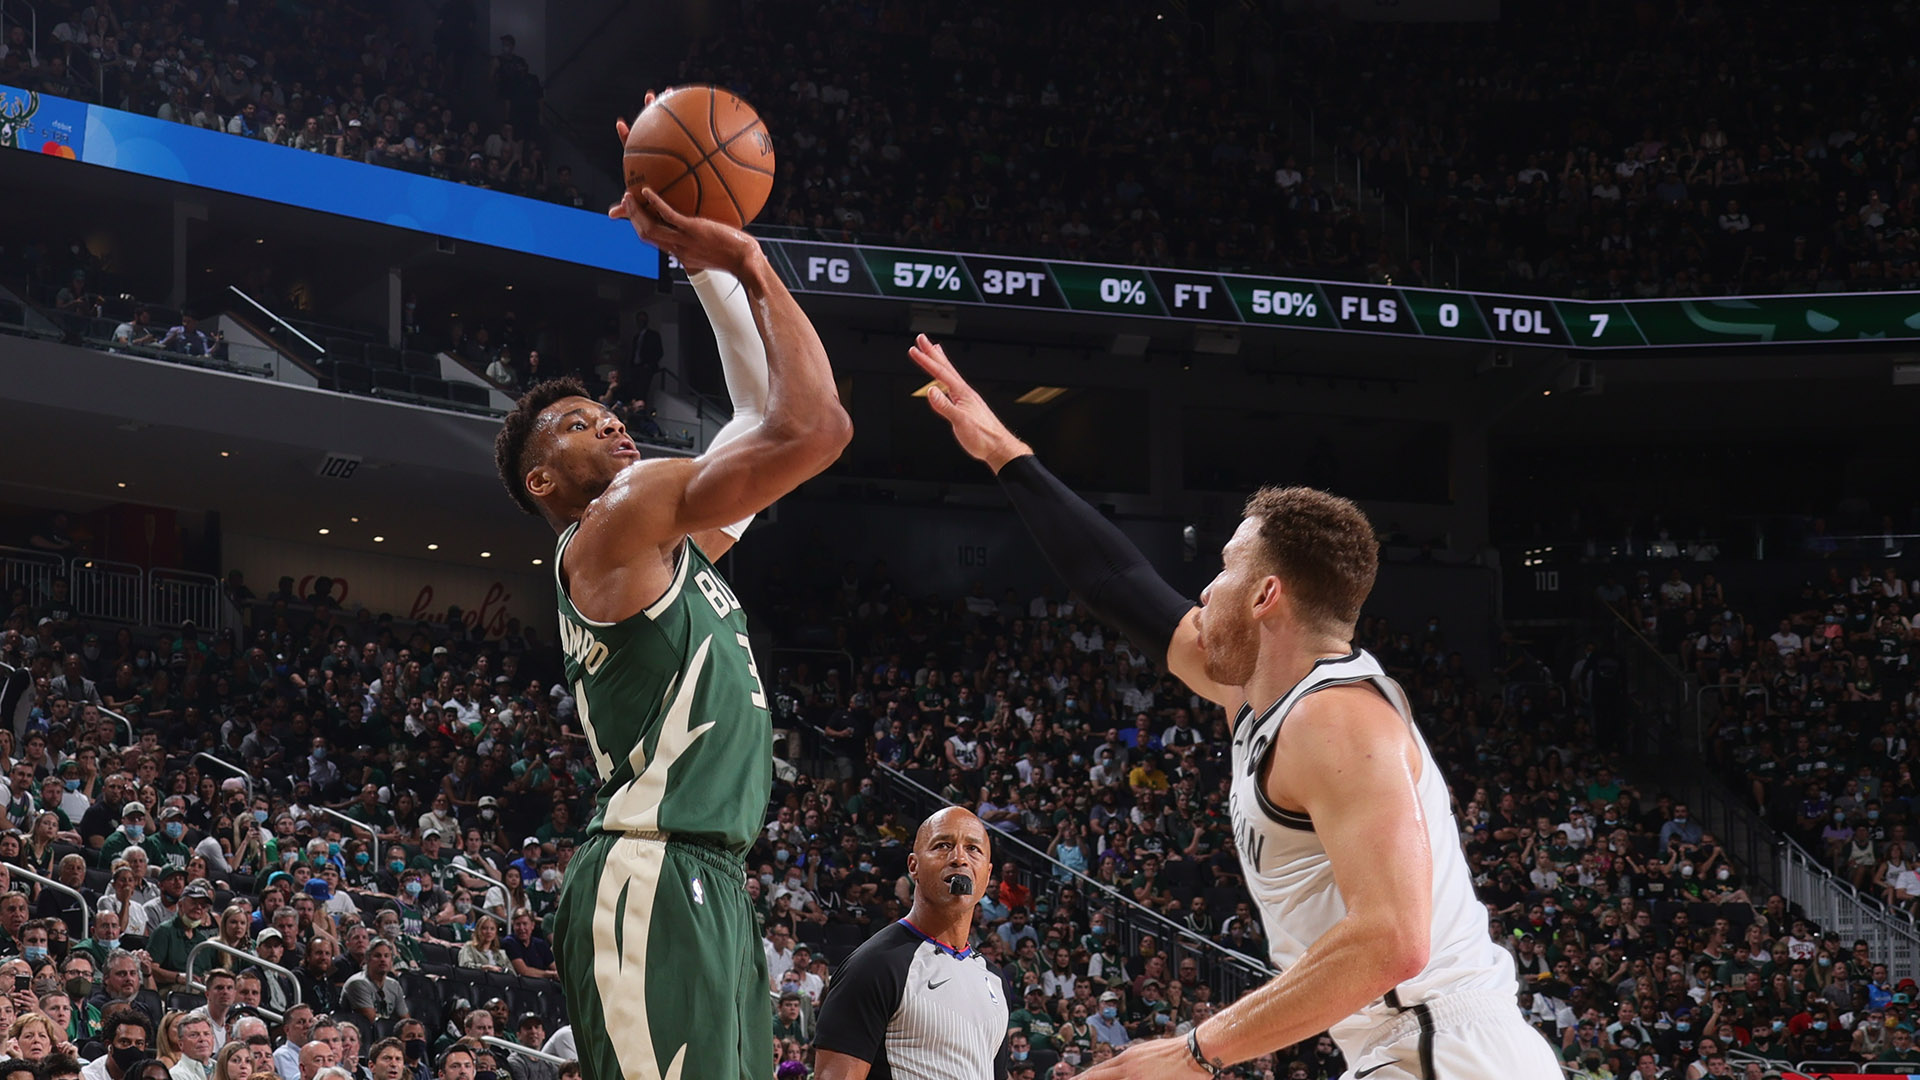 For Giannis and the Bucks, 2 might be better than 3